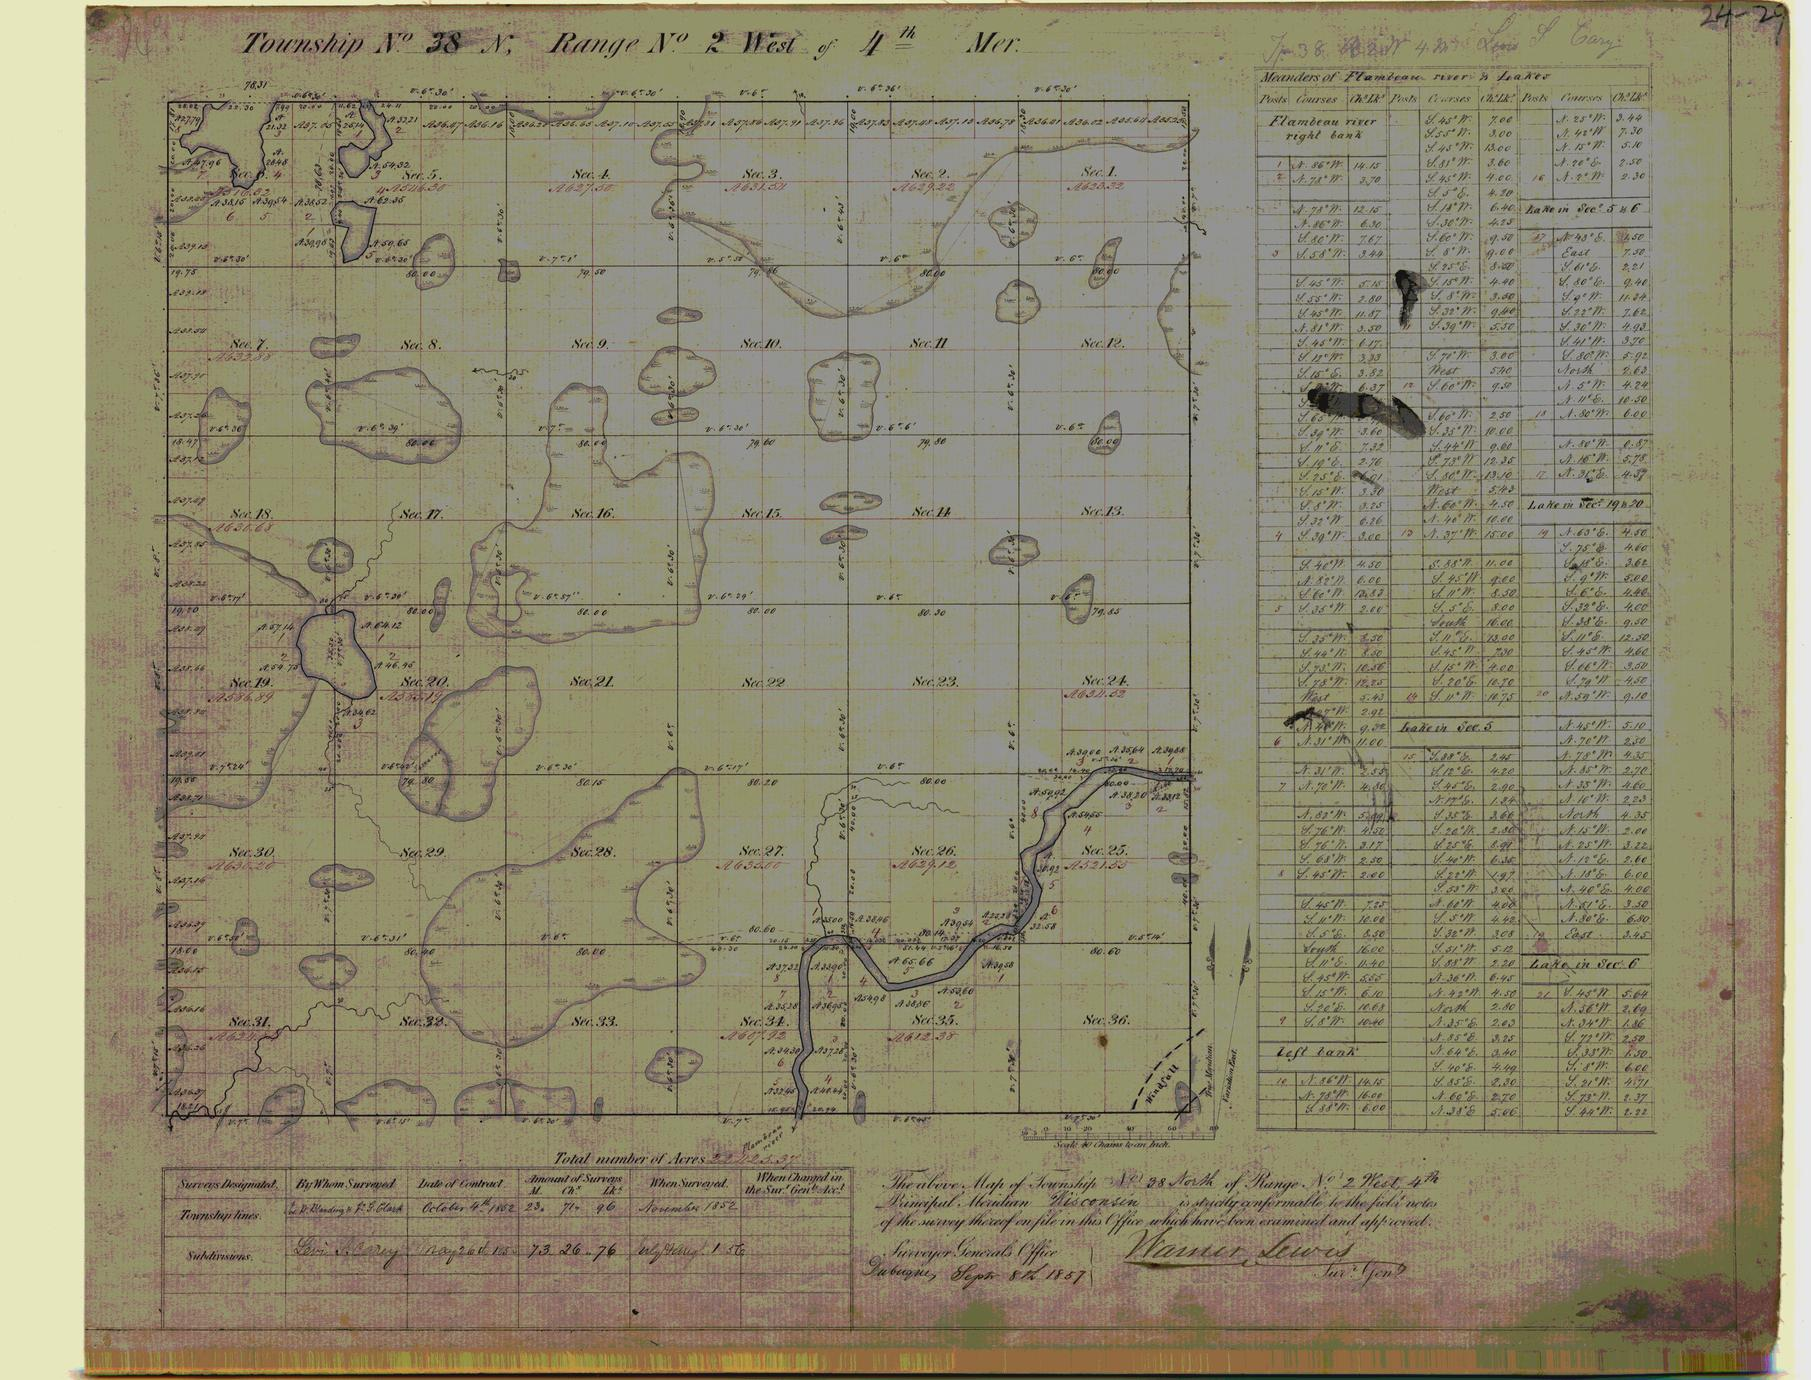 [Public Land Survey System map: Wisconsin Township 38 North, Range 02 West]